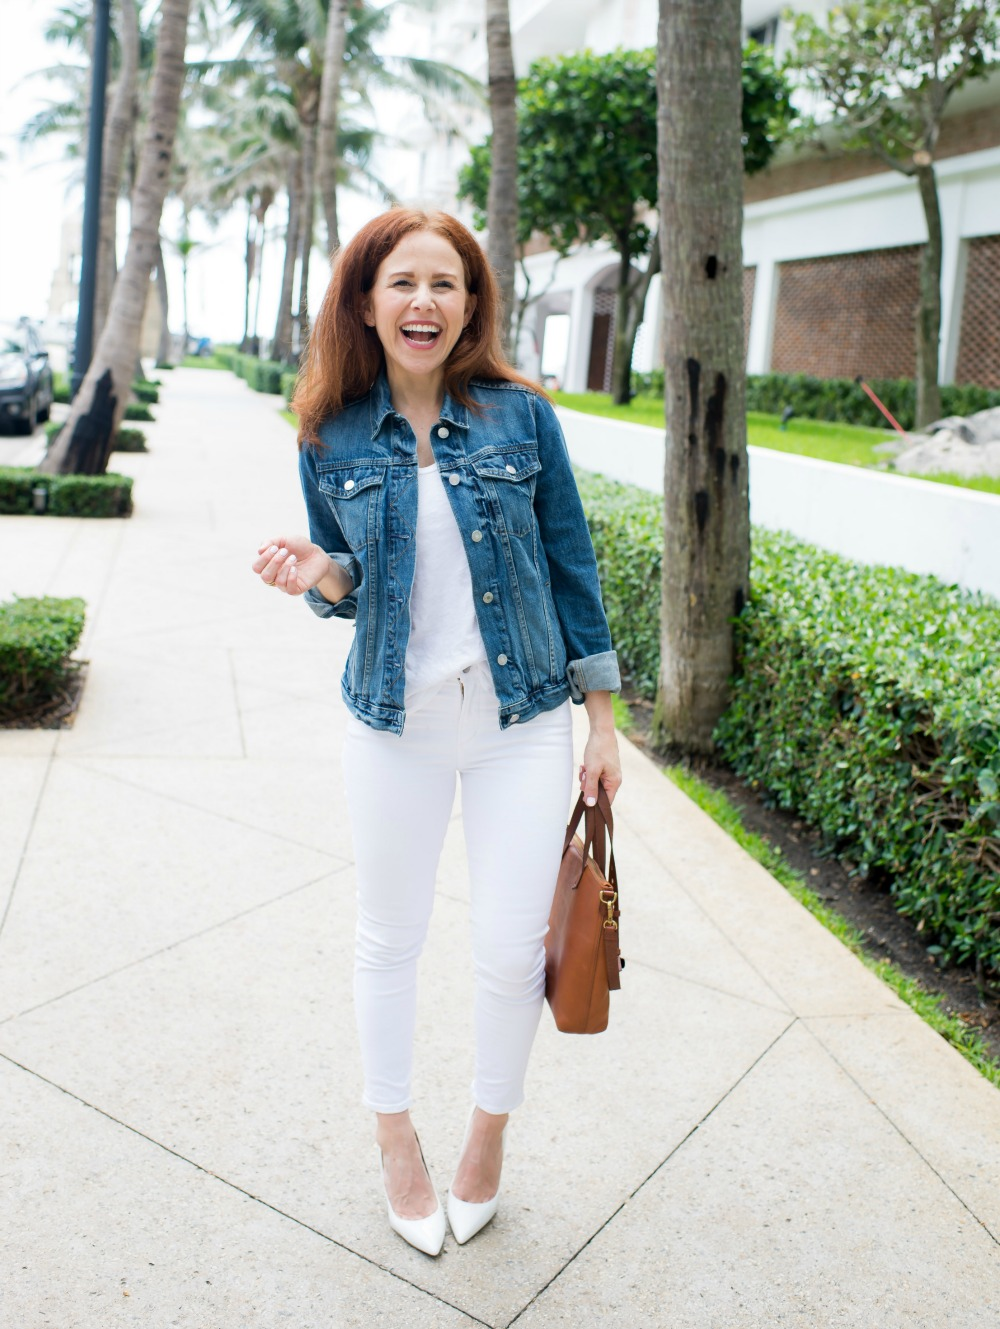 Five Easy, Cute Outfit Ideas for a White tee and white jeans #summeroutfit #whitetee #whitedenim | How to Wear White Jeans & White Tee - outfit ideas featured by popular Florida style blogger, The Modern Savvy